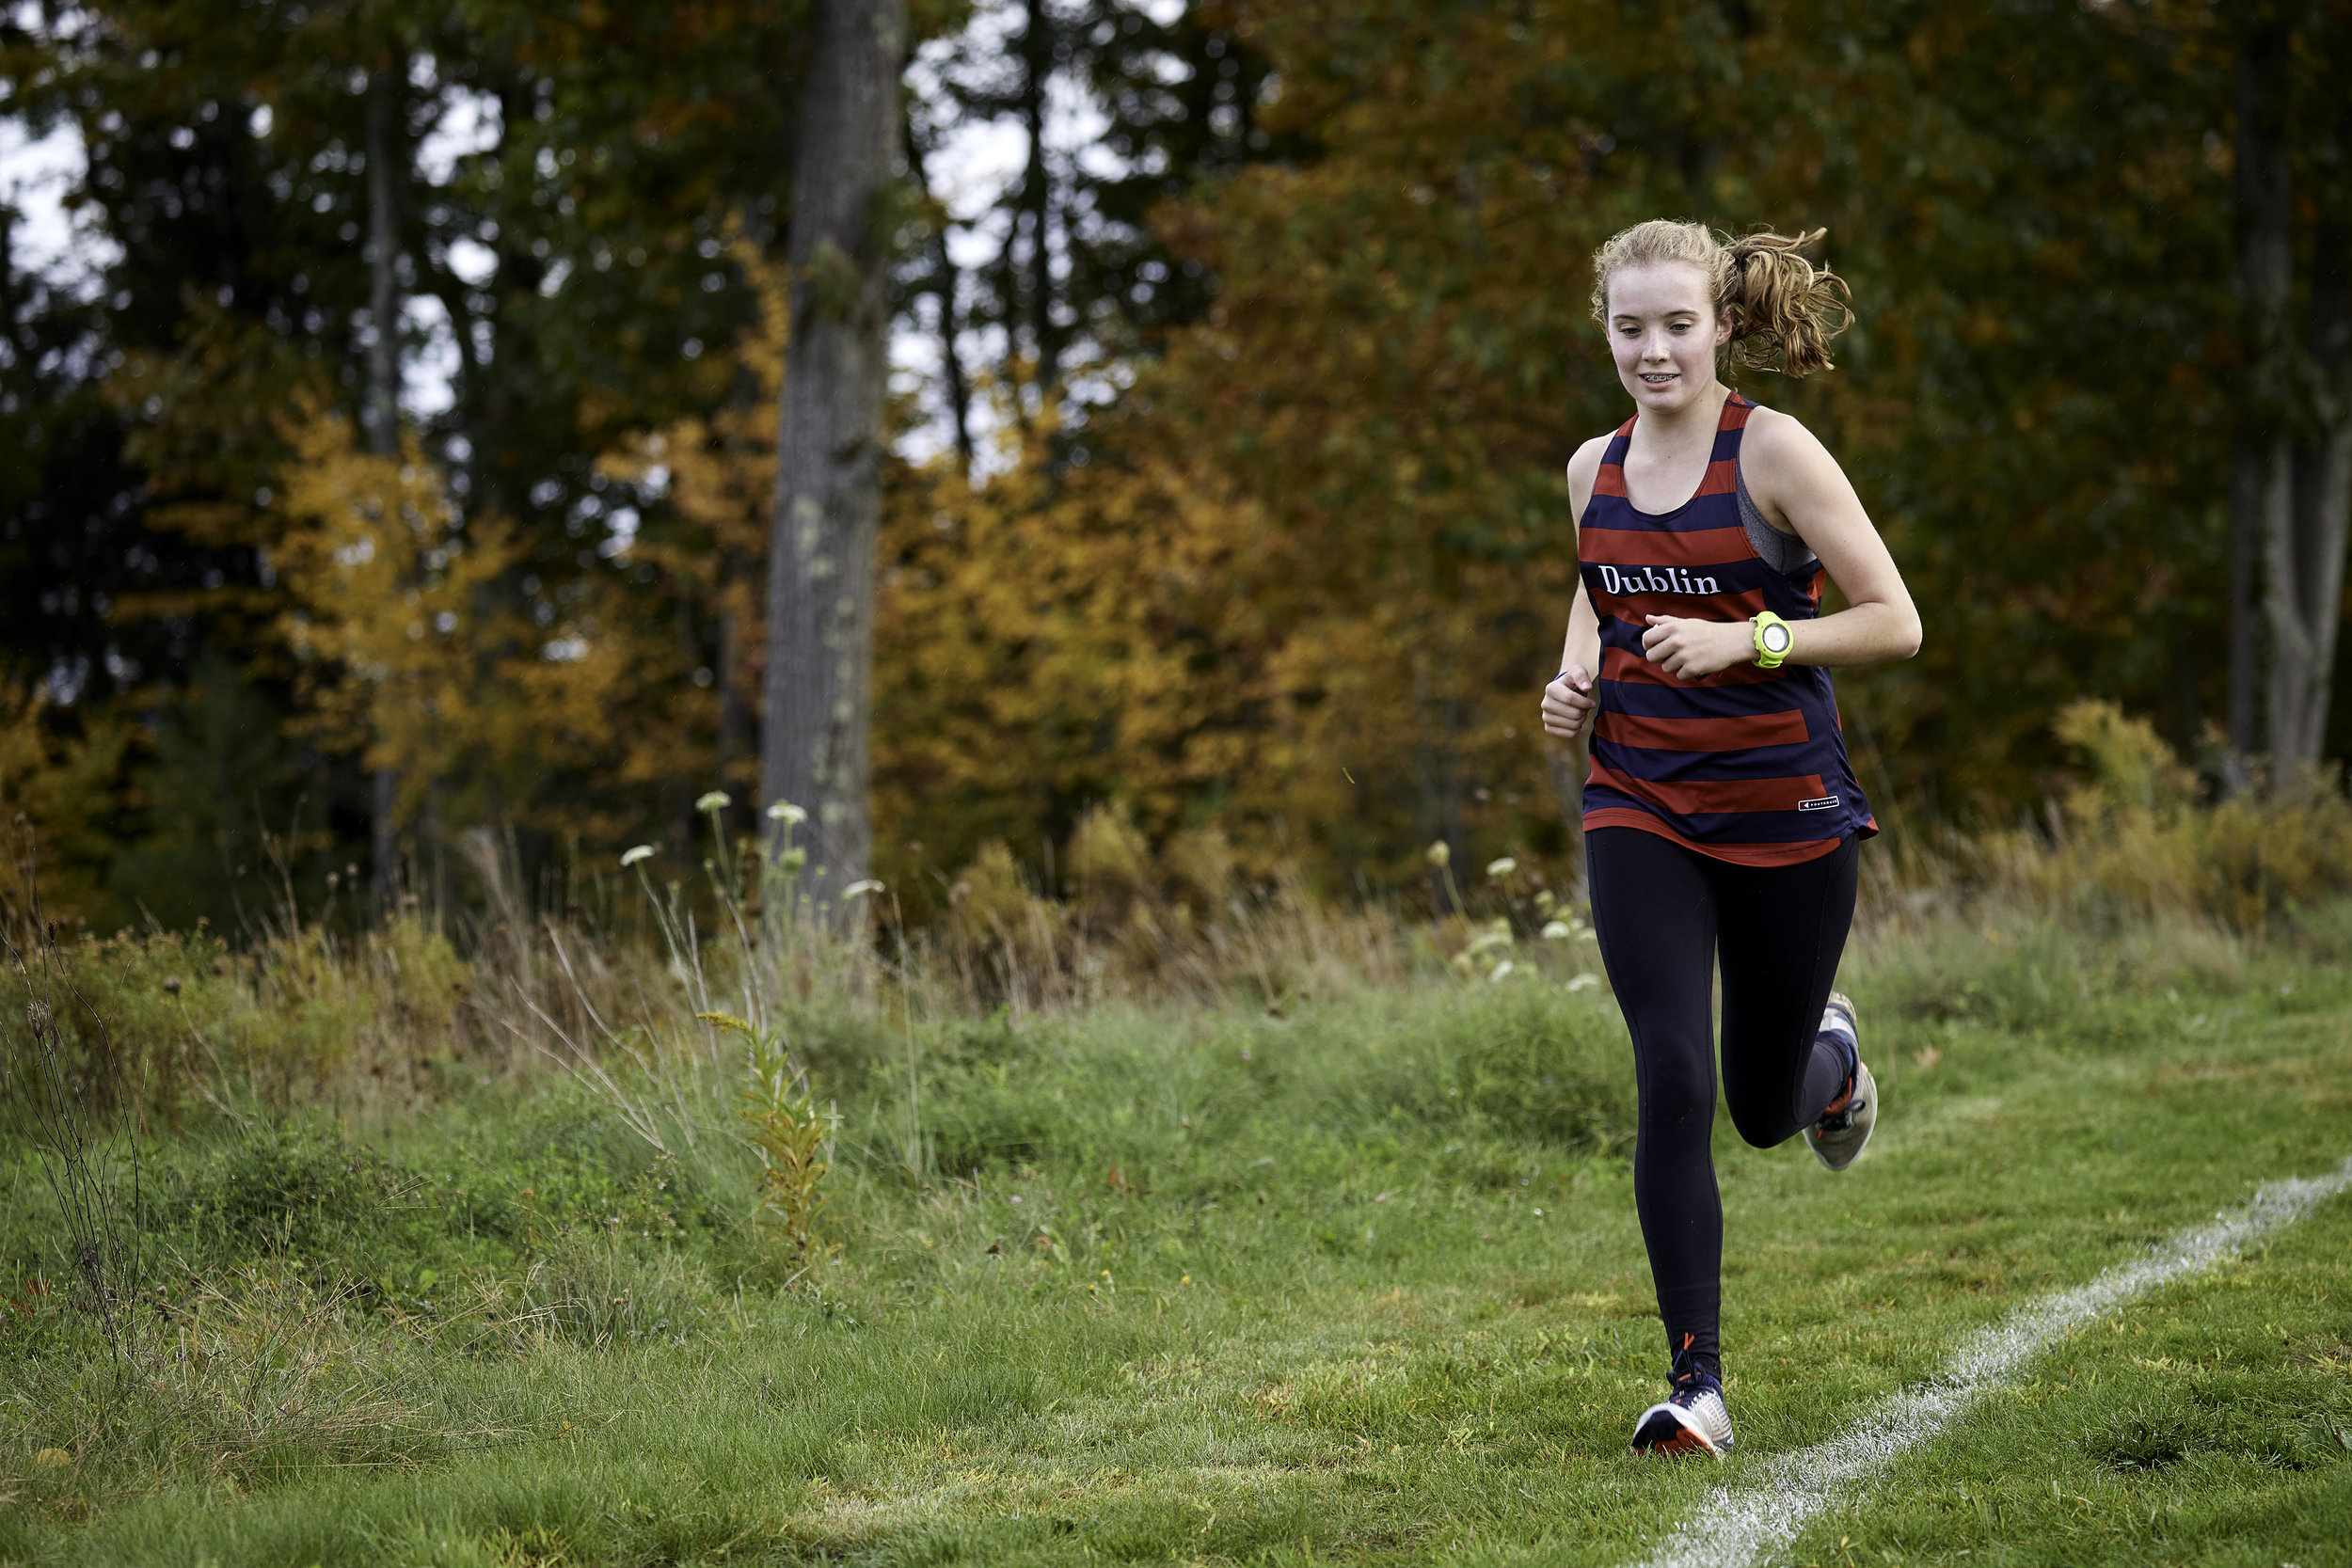 Dublion Invitational - October 12, 2018 - 136579.jpg